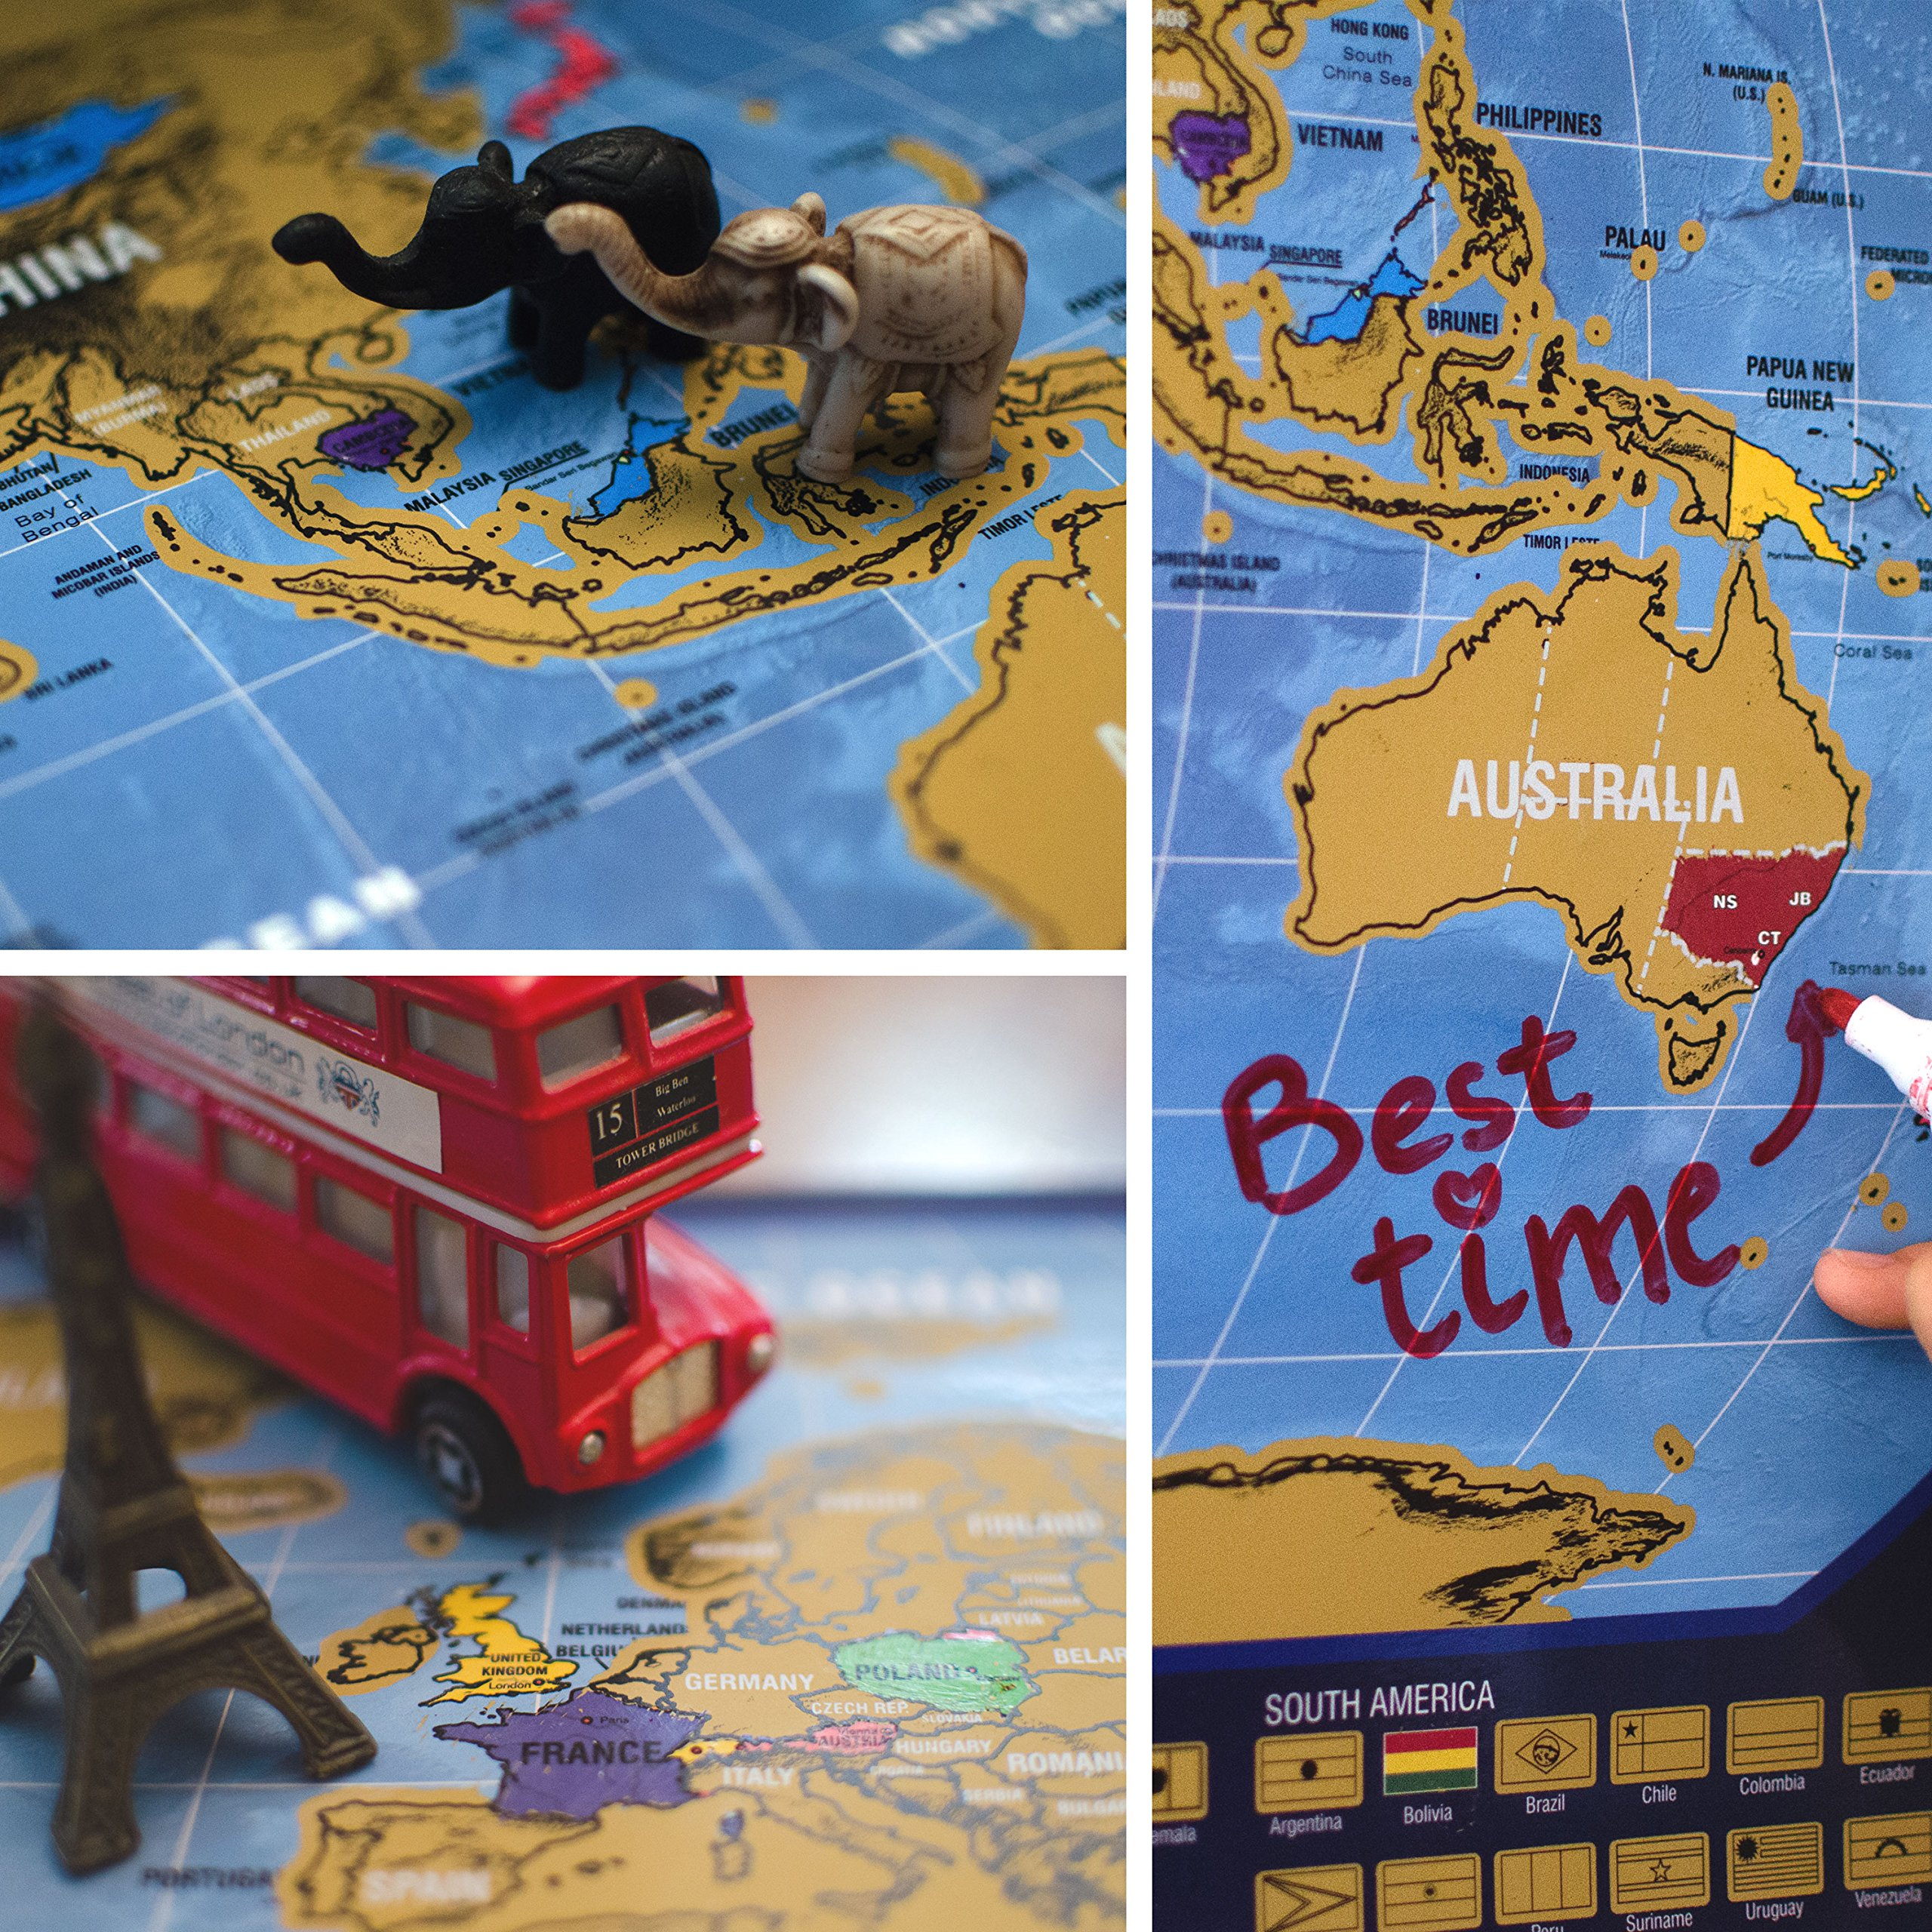 Scratch off Map of the World, with country flags and US state borders - Laminated surface - Scrape tool included - Bright and Vibrant Colors - Designed by Dotty N'Spotty by Dotty N'Spotty (Image #8)